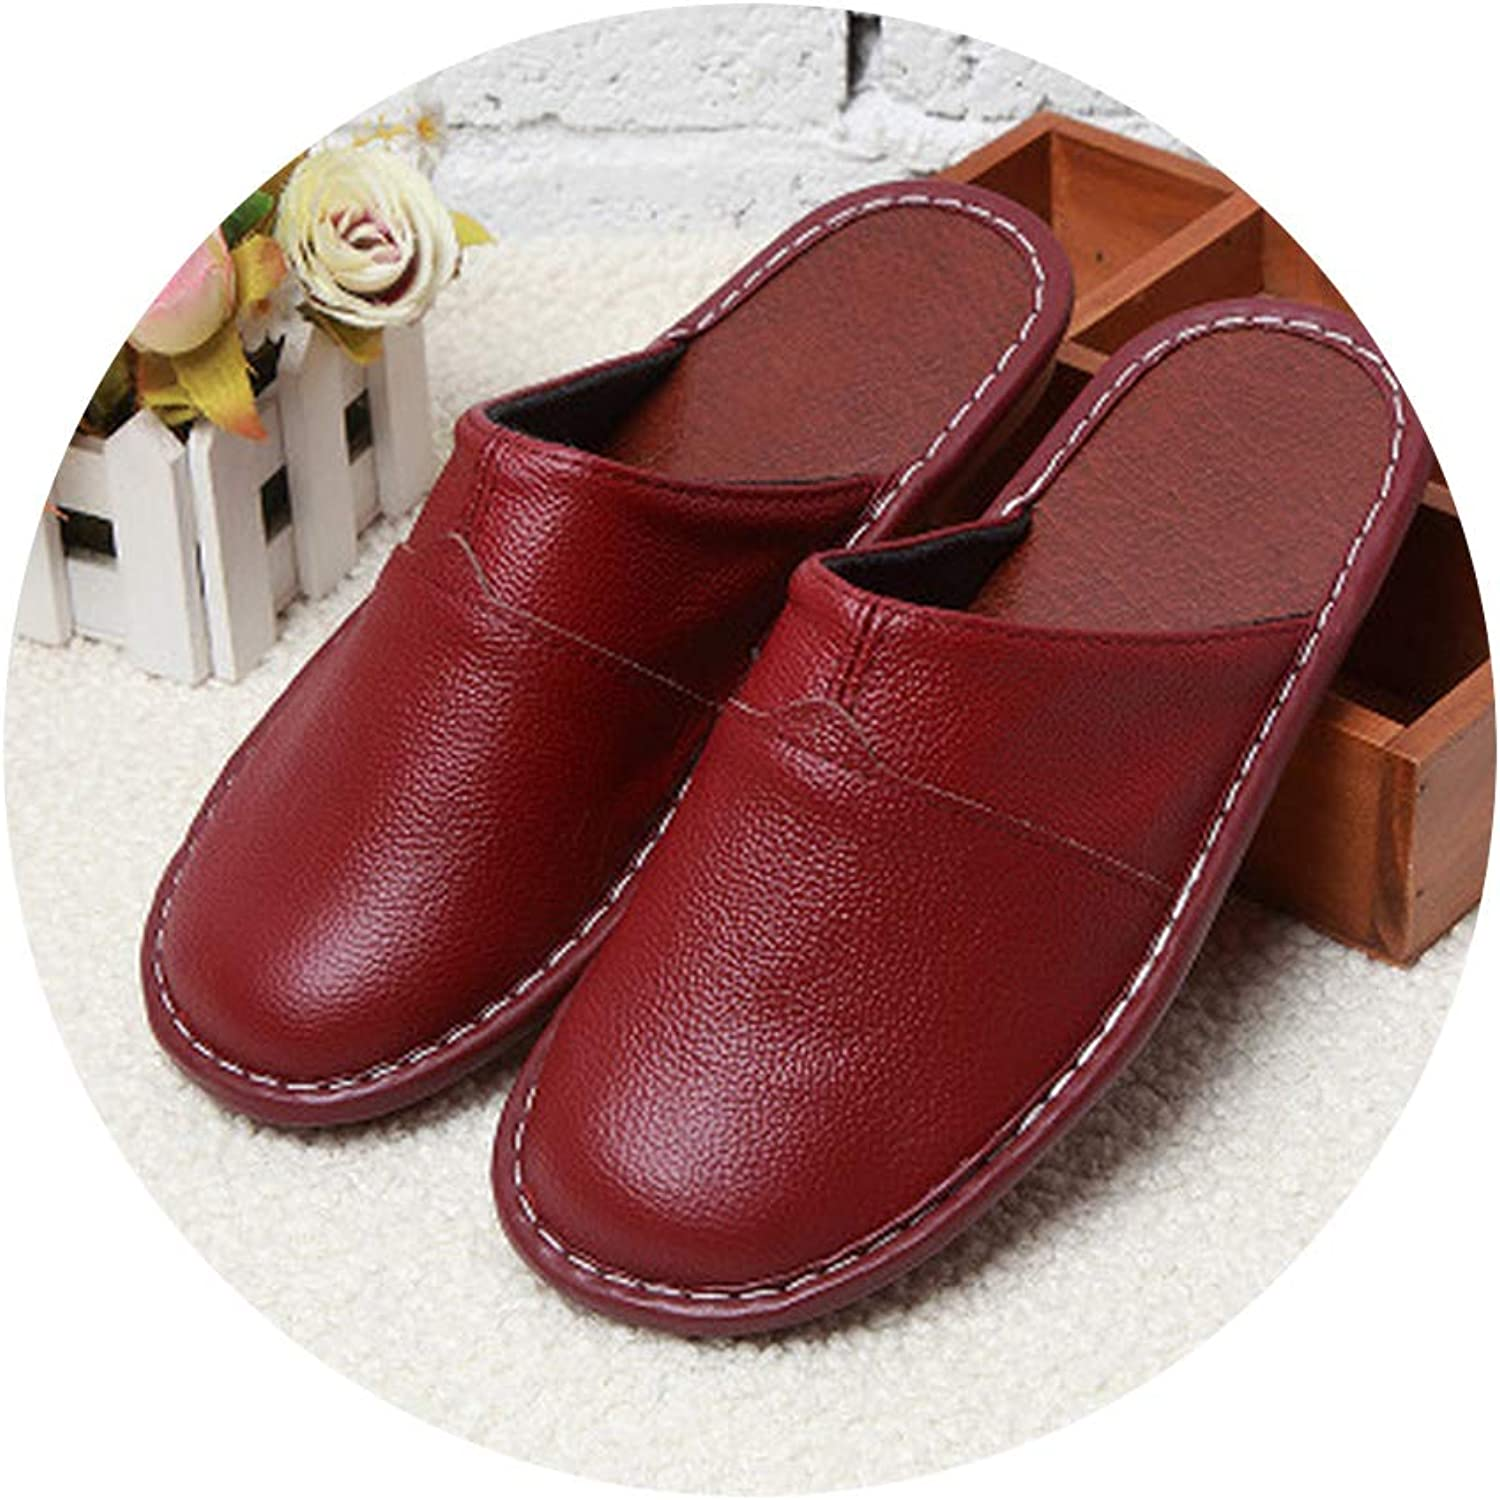 Log SWIT Leather Male Slippers Home Family Male Slippers Non-Slip Unisex shoes Spring